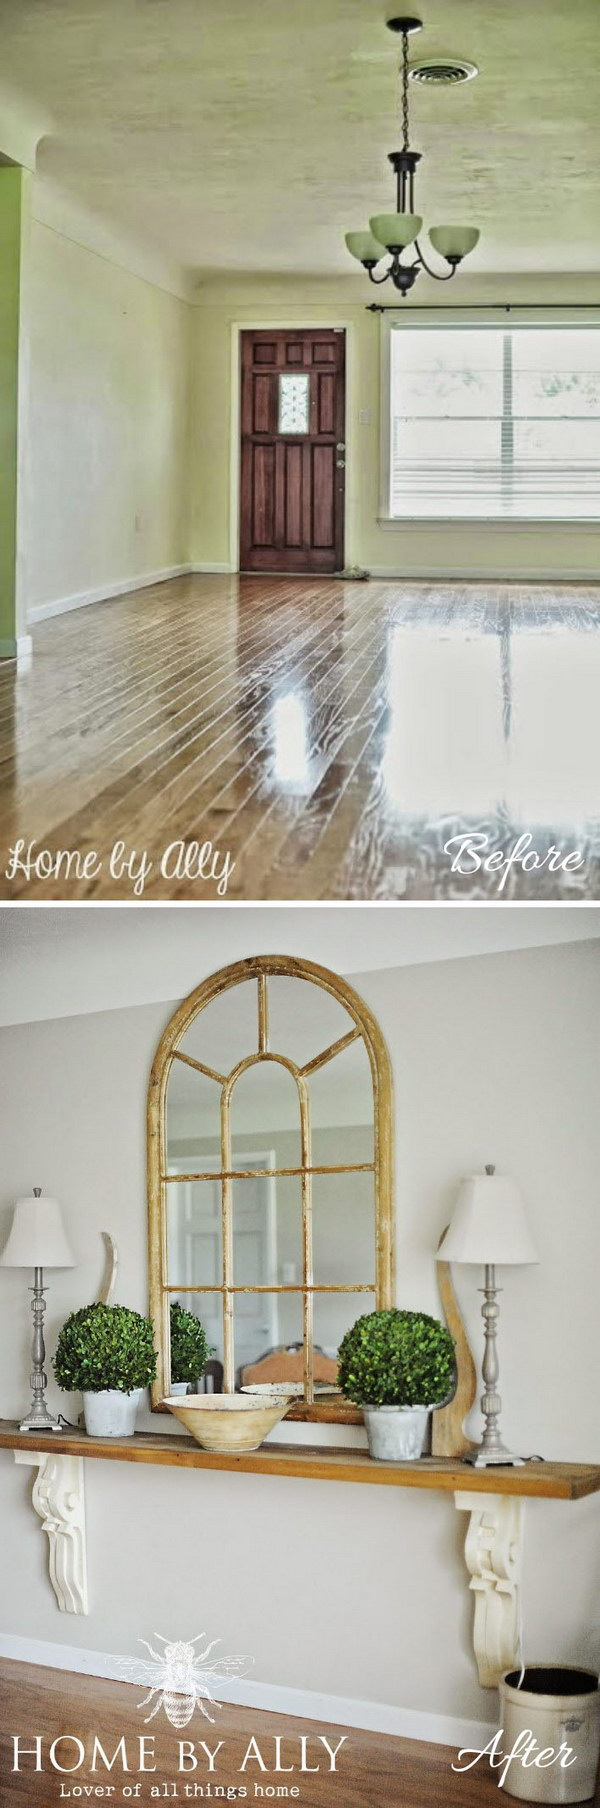 DIY Entryway Table Using Corbels or Architectural Salvage.